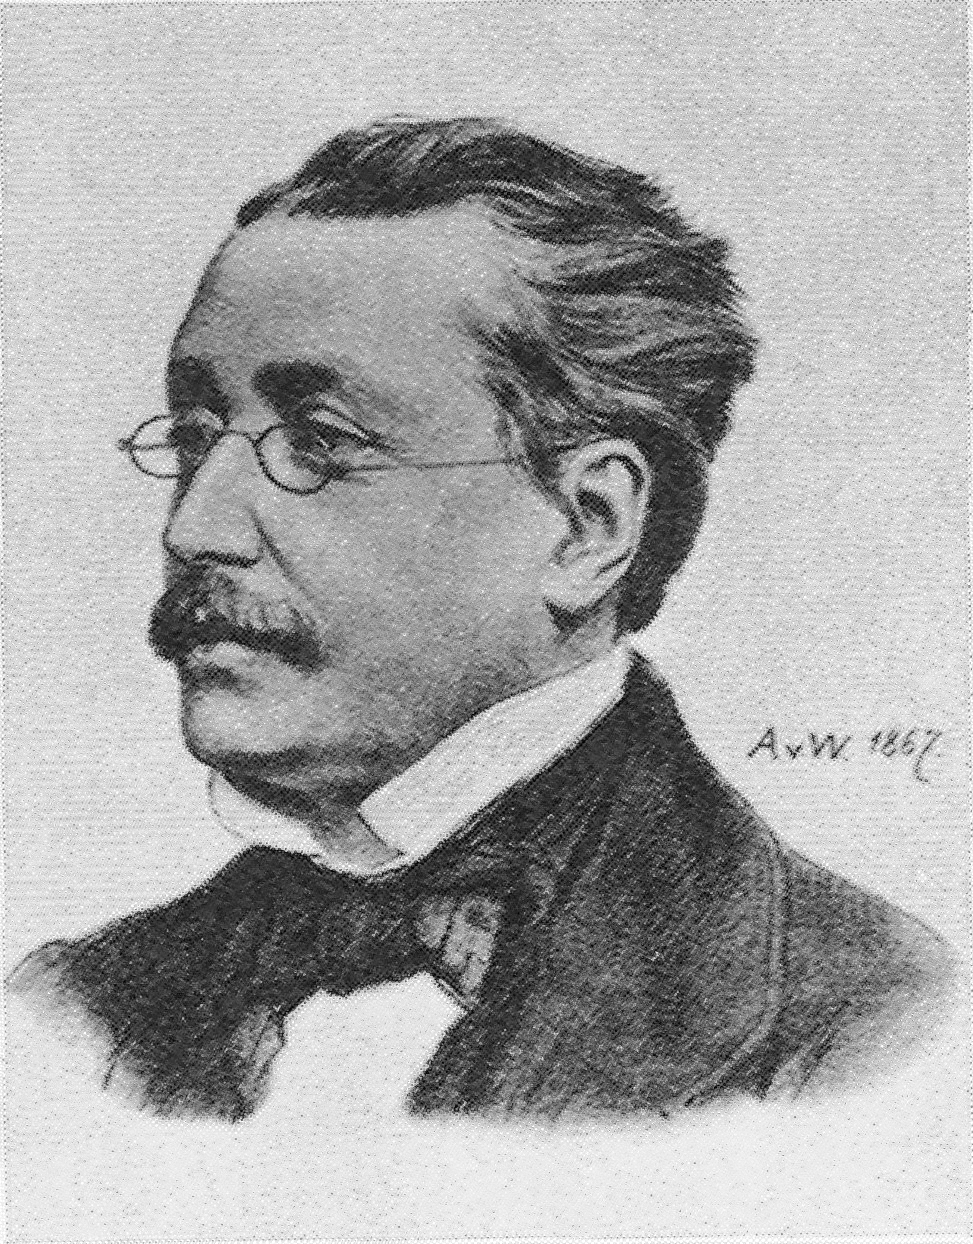 This black and white illustration could be of any white guy between 1800-1950. He has a mustache, his glasses are too tiny, he wears a high popped collar with a ribbon tied around it. Severe widow's peak. This guy just looks like Teddy Roosevelt.